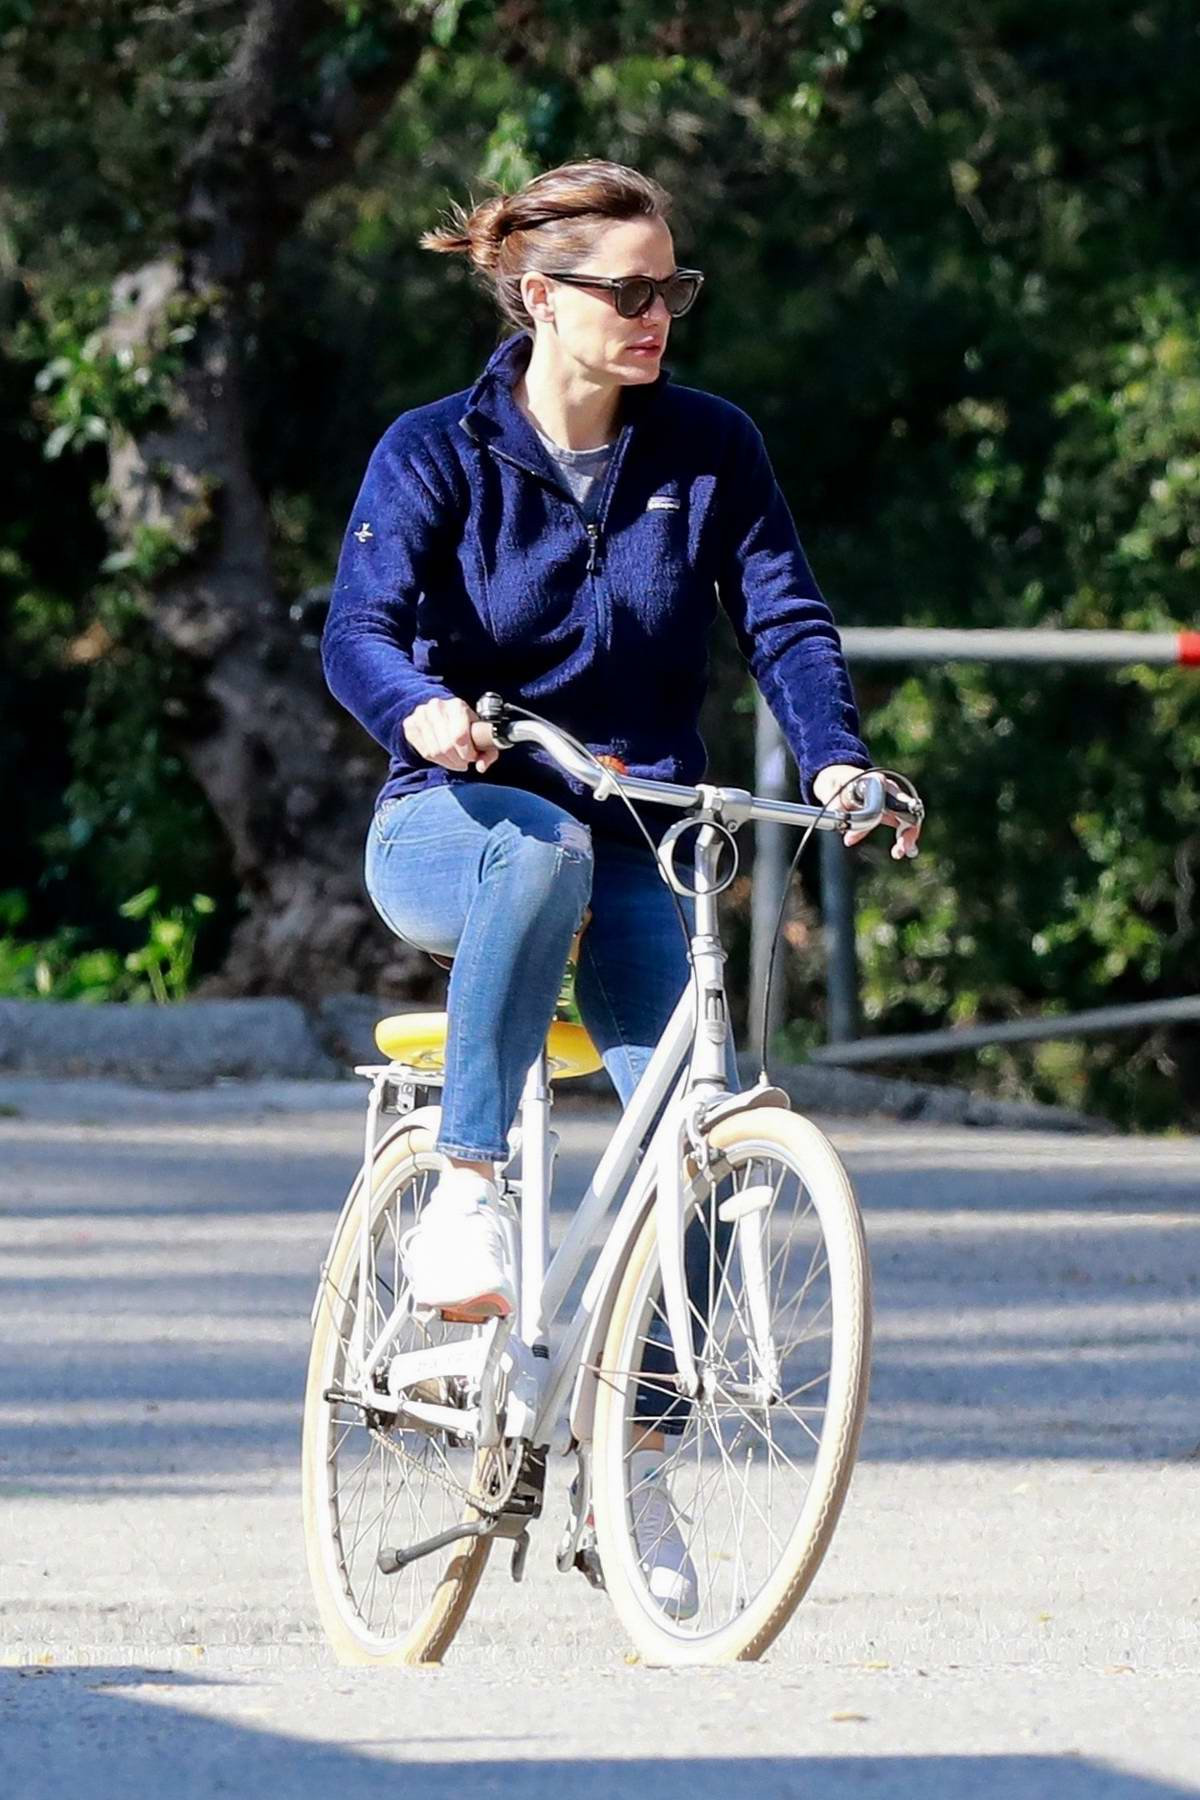 Jennifer Garner takes a break from self quarantine and enjoys some bike ride in Pacific Palisades, California